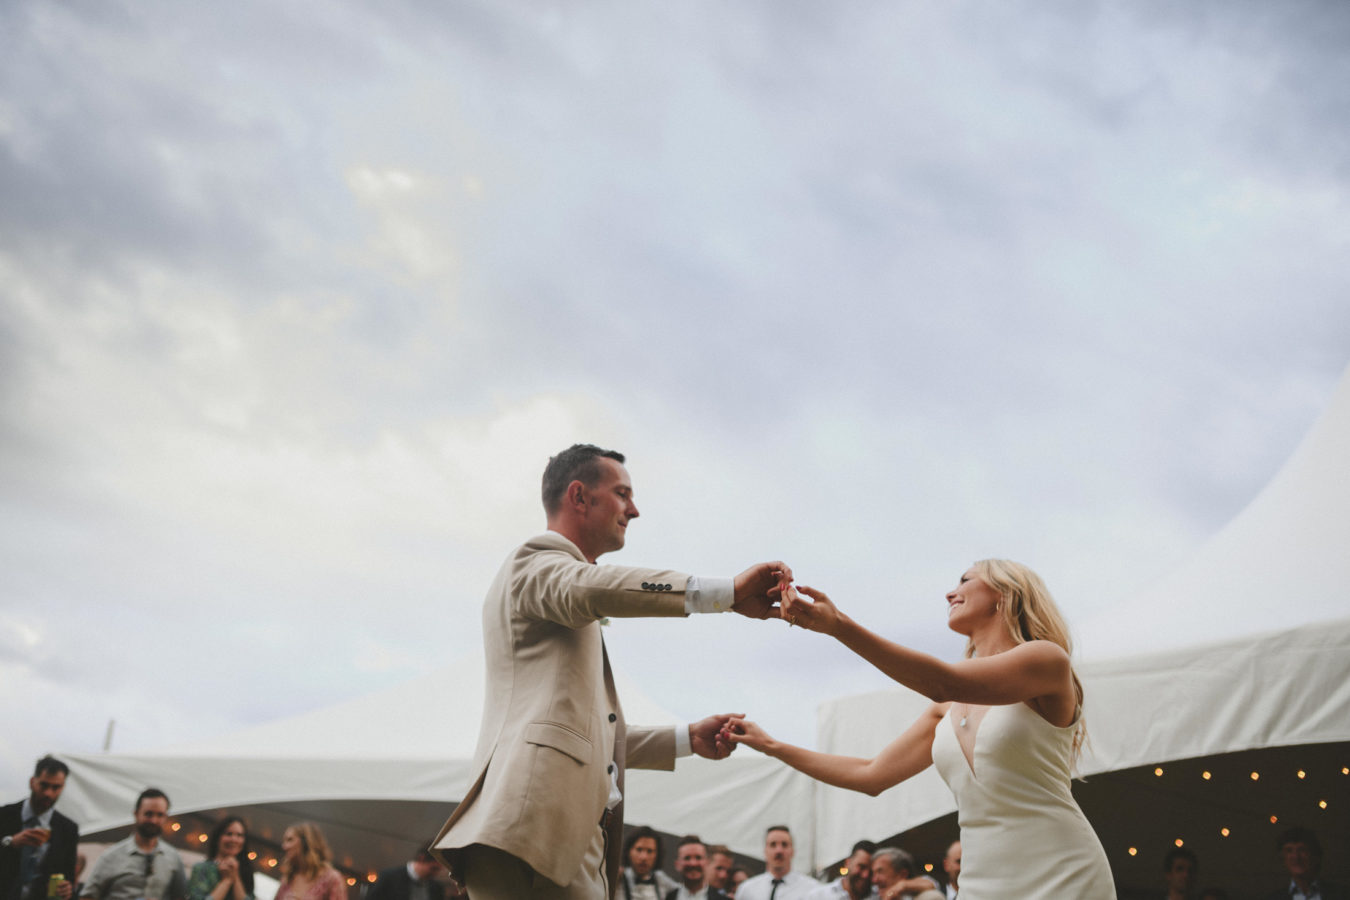 bride and groom dancing with guests looking on & white tents in the background